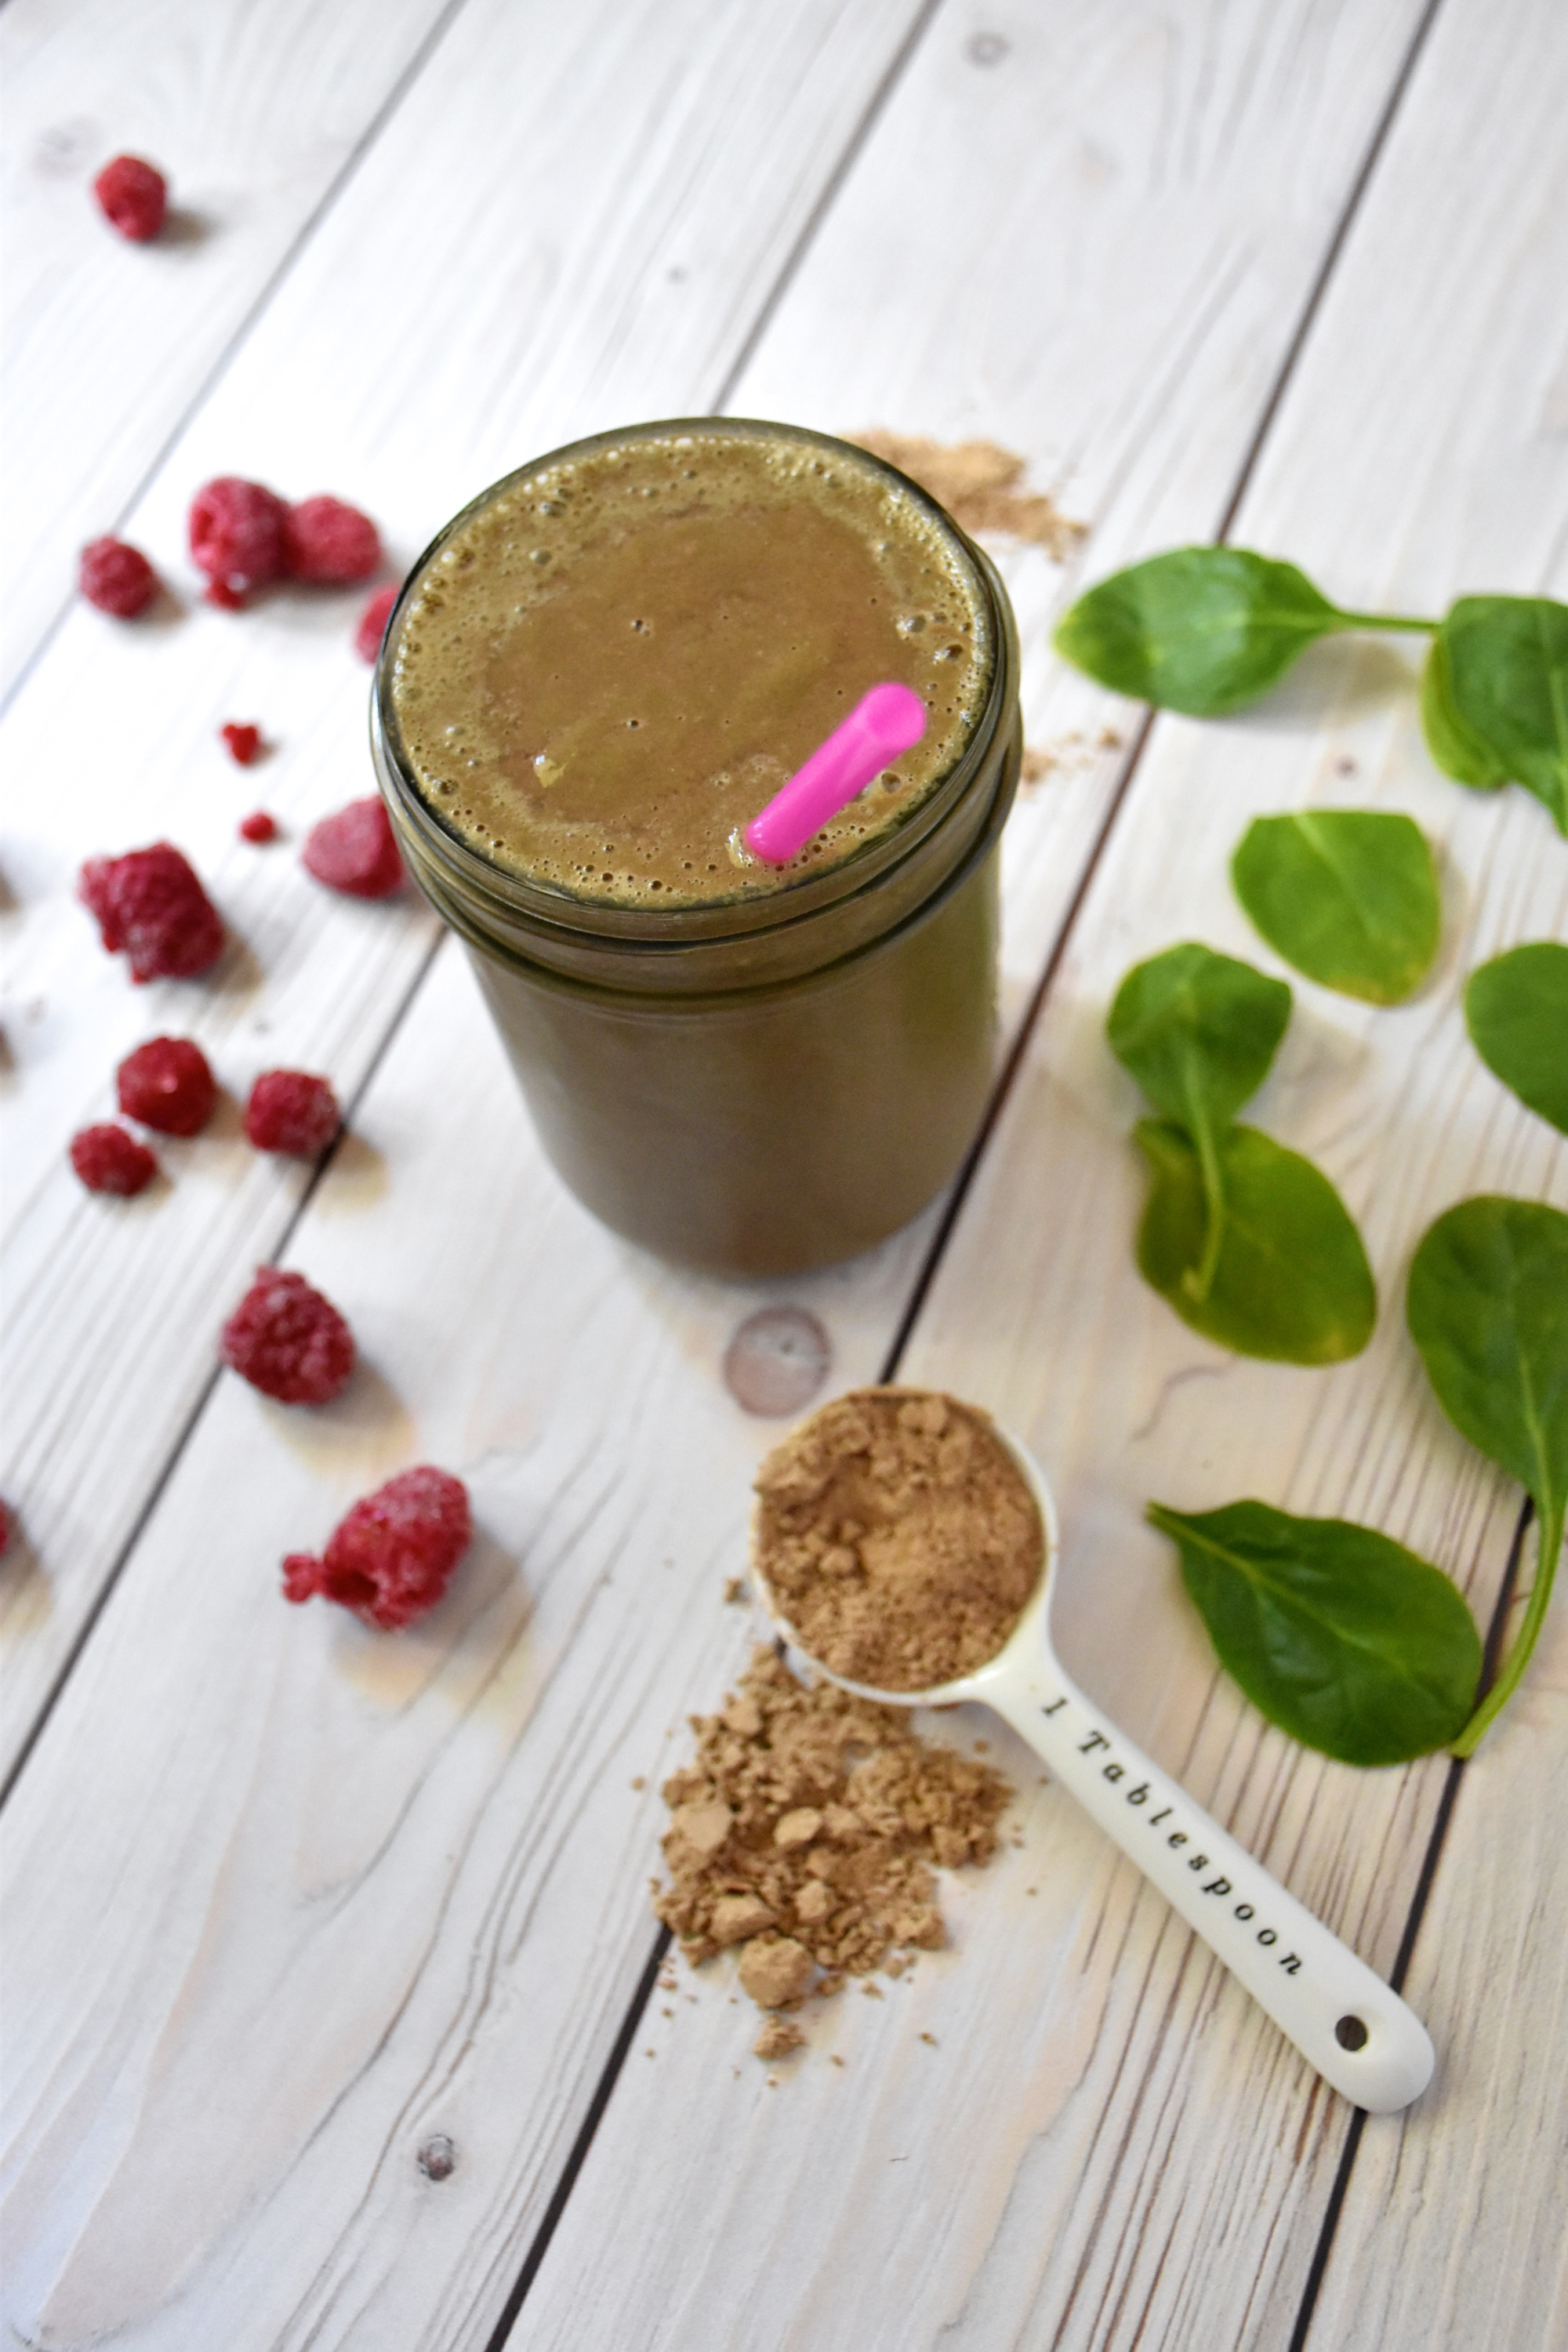 Top 5 Gluten-free Dairy-free Protein Powders plus a chocolate raspberry spinach protein powder smoothie recipe